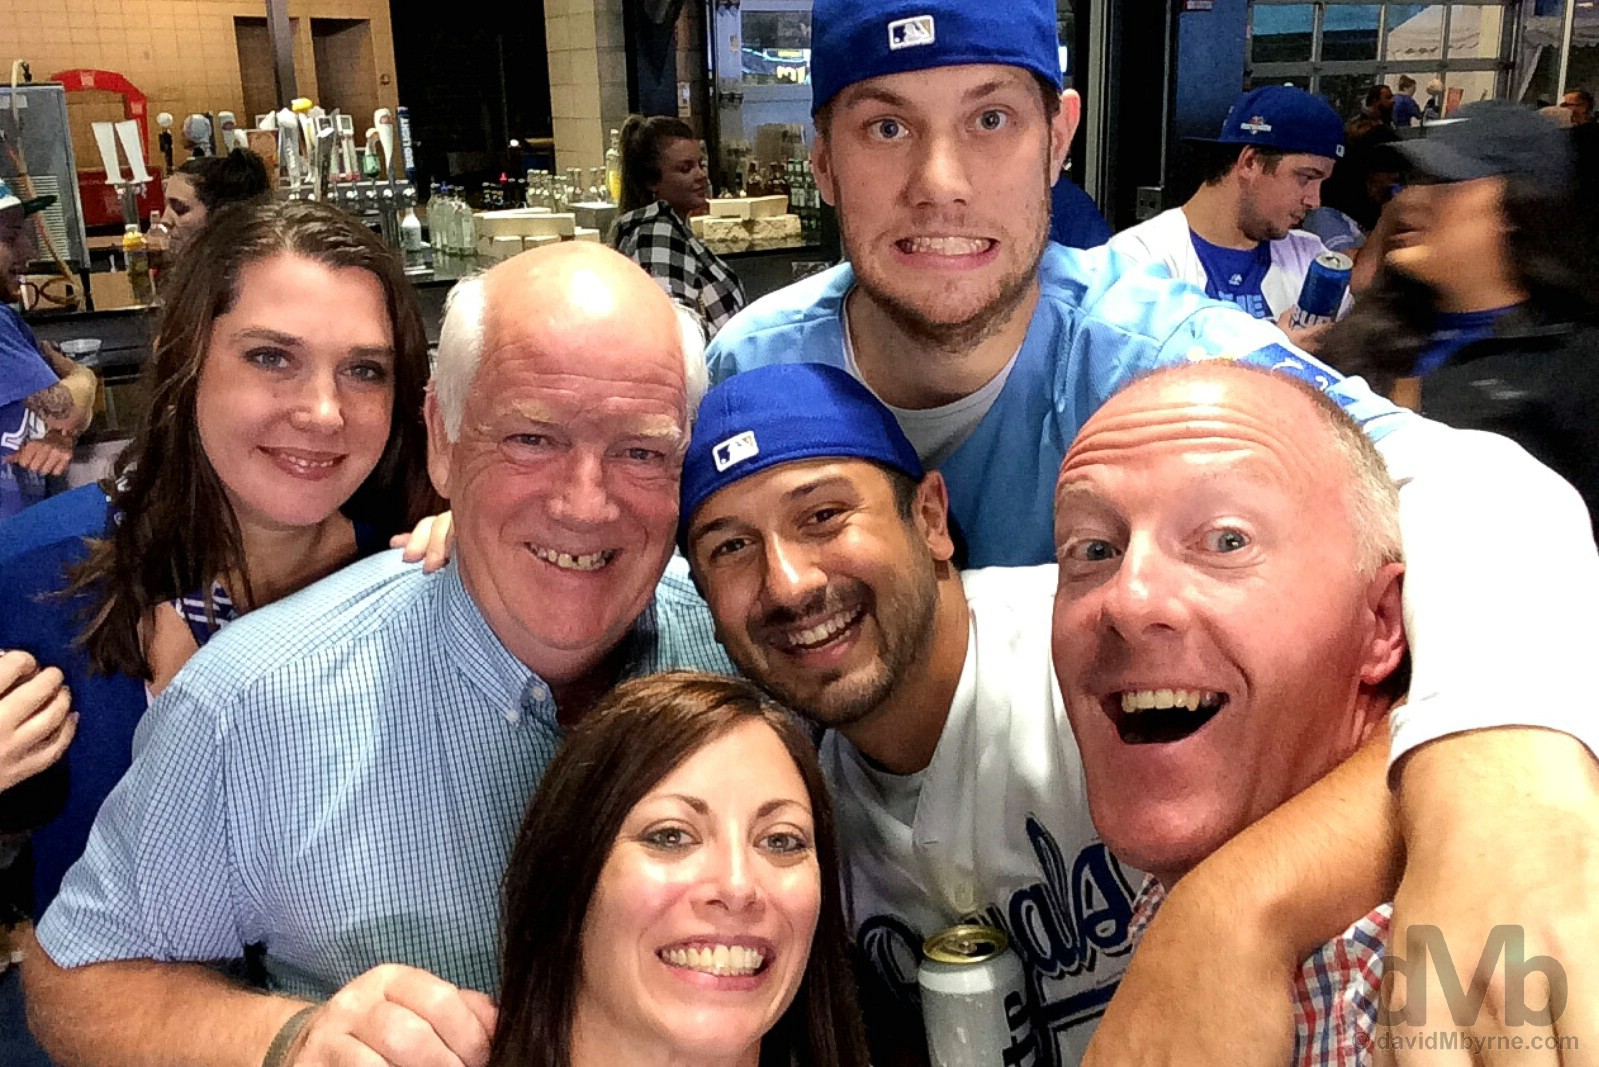 Group selfie. Kauffman Stadium, Kansas City, Missouri, USA. September 16, 2016.